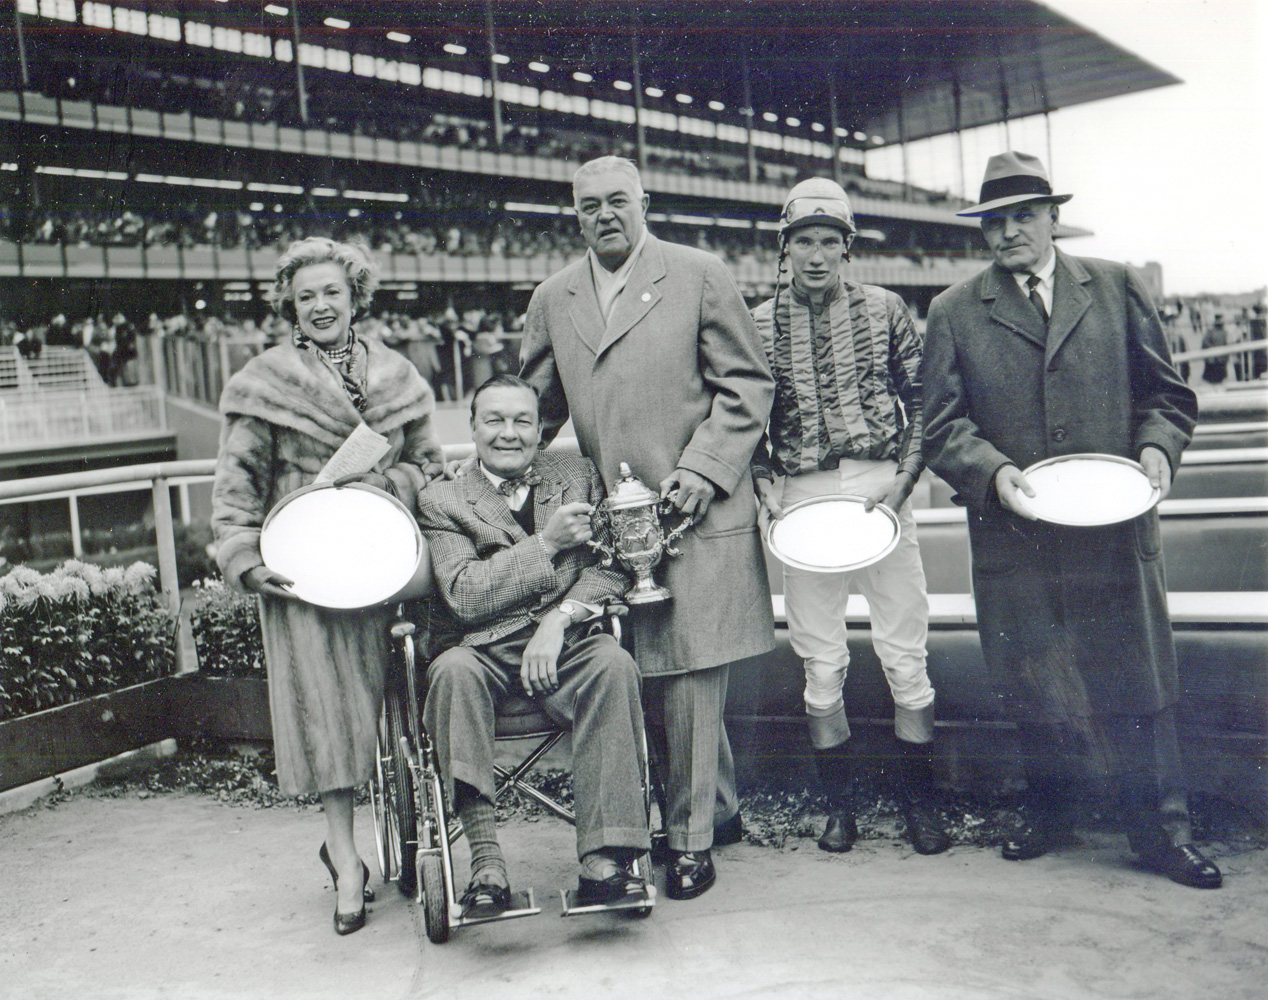 """Mr. and Mrs. Stephen """"Laddie"""" Sanford, S. Bryce Wing, jockey Thomas Walsh, and trainer Hollie Hughes at the 1959 Grand National Steeplechase trophy presentation (won by Sun Dog) (Keeneland Library Morgan Collection/Museum Collection)"""